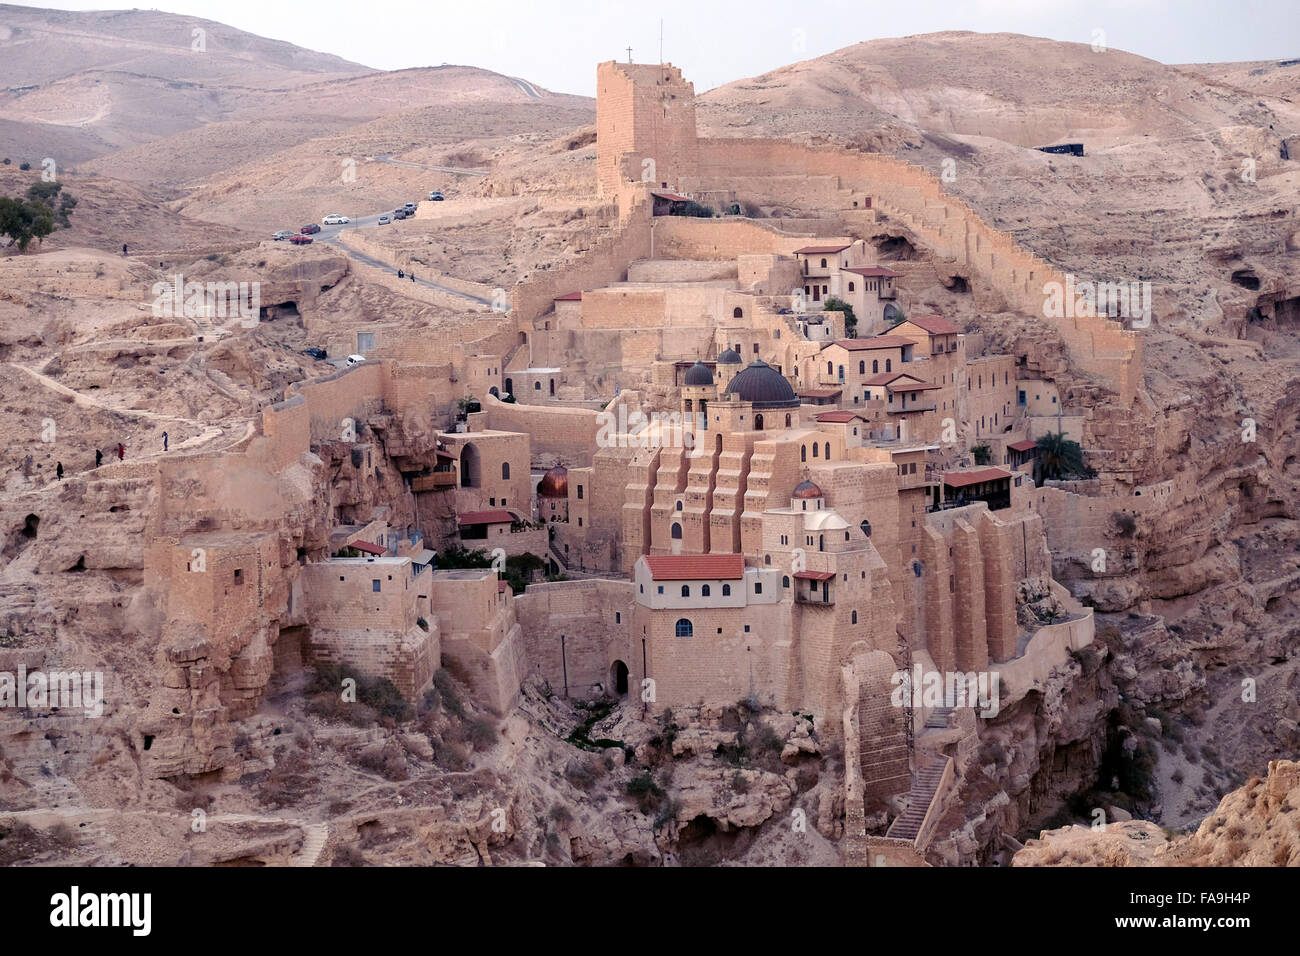 View of the Greek Orthodox monastery of the Holy Lavra of Saint Sabbas, known in Syriac as Mar Saba in the Judaean Stock Photo